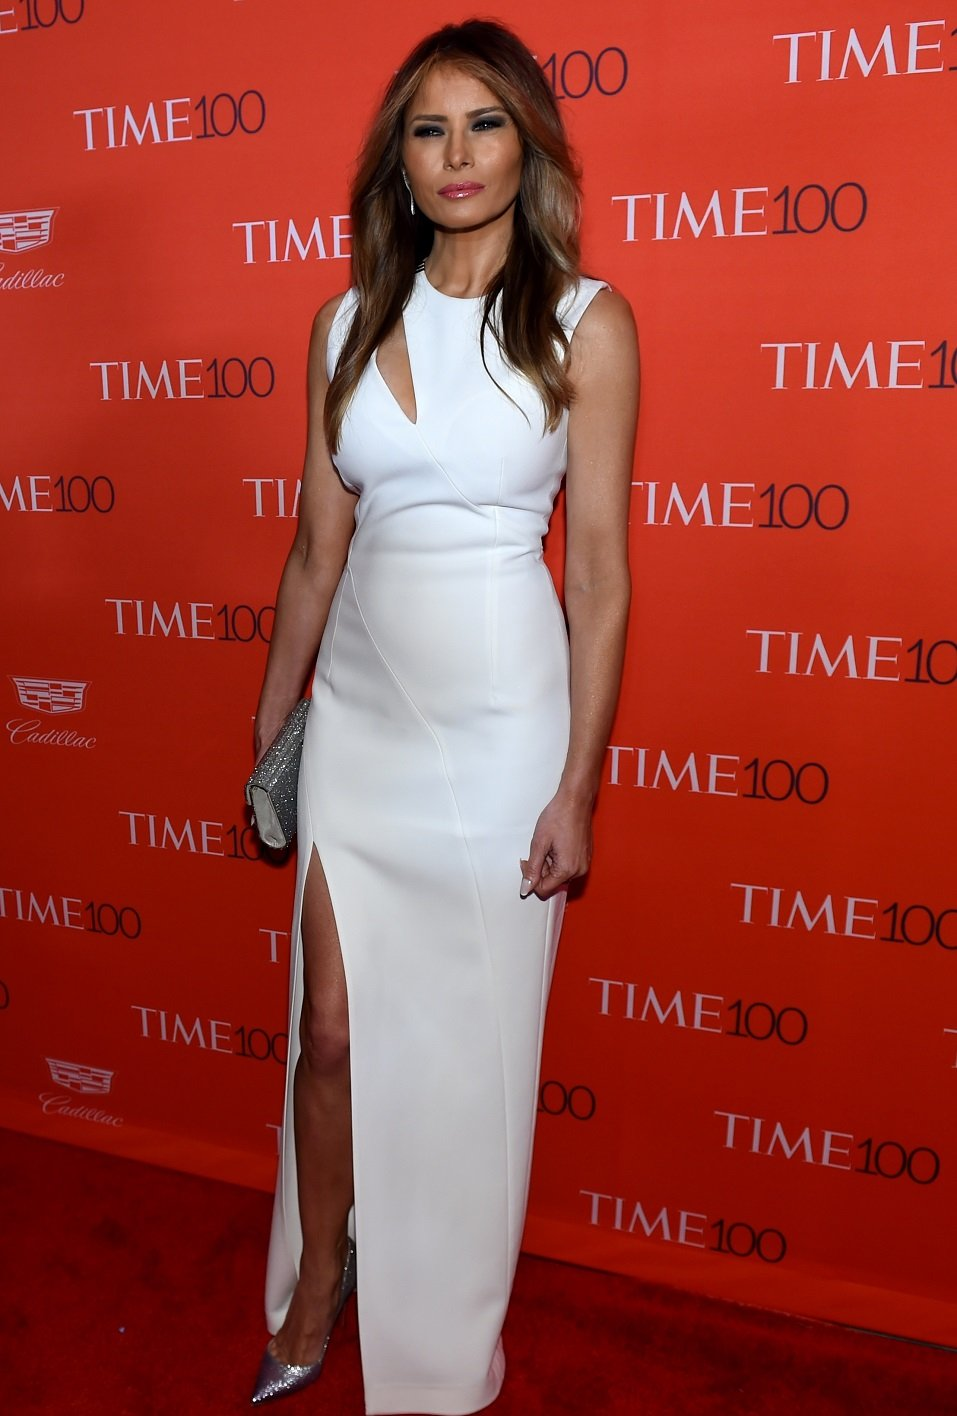 Melania Trump attends the Time 100 Gala celebrating the Time 100 issue of the Most Influential People